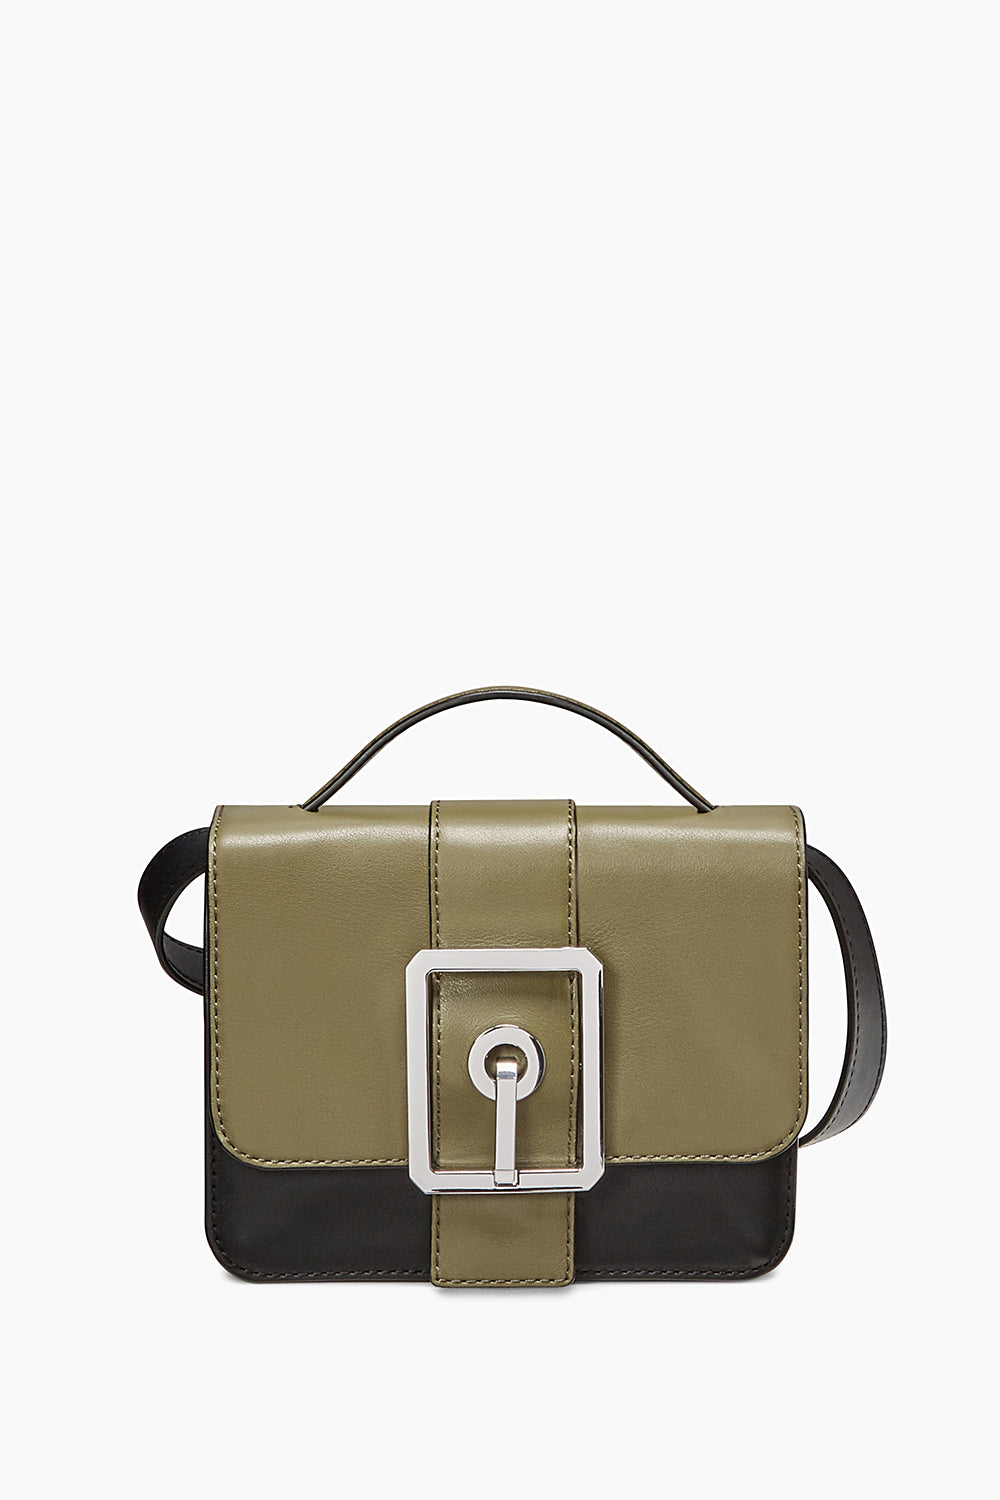 Hook Up Top Handle Small Crossbody